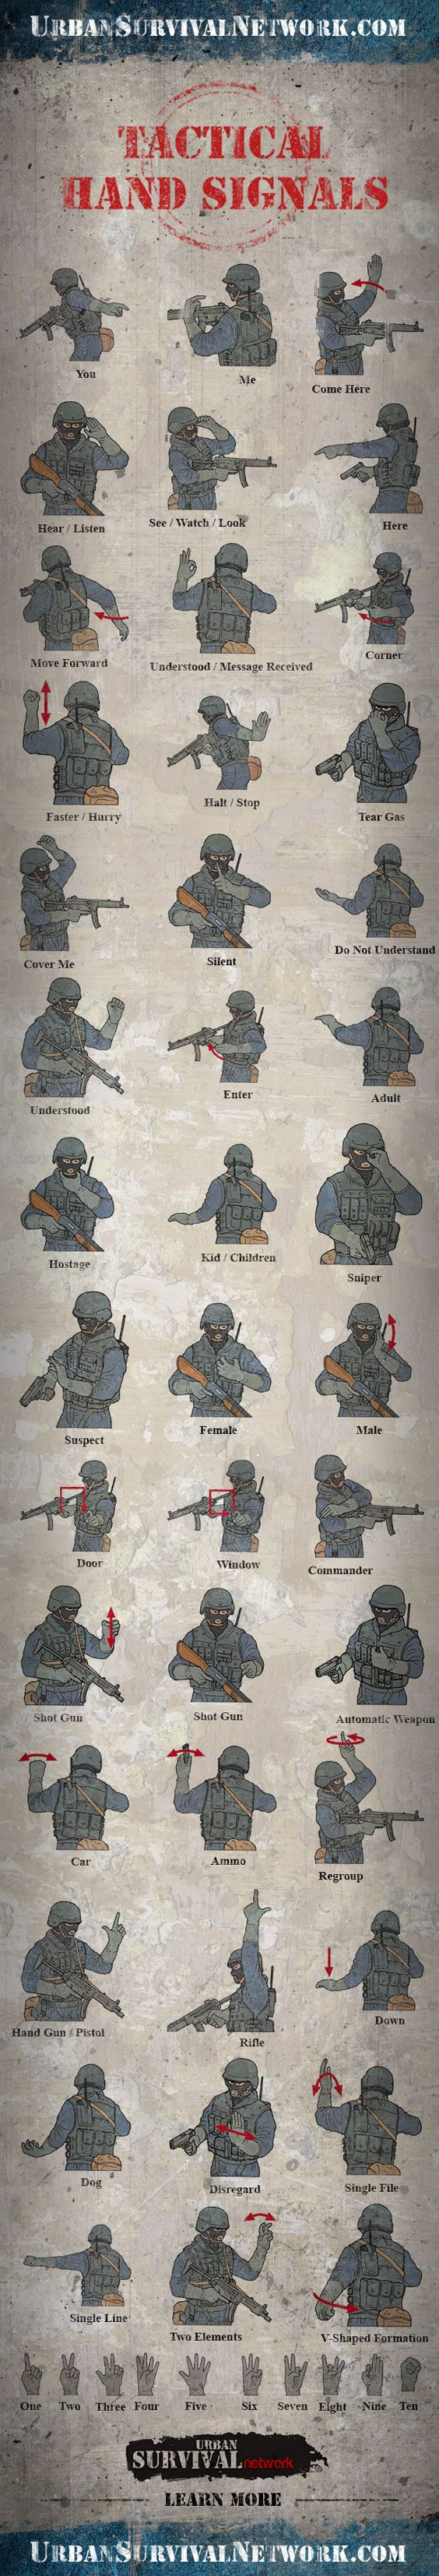 Tactical-Hand-Signals-That-Every-Prepper-Should-Know.jpg 564×3,307 pixels